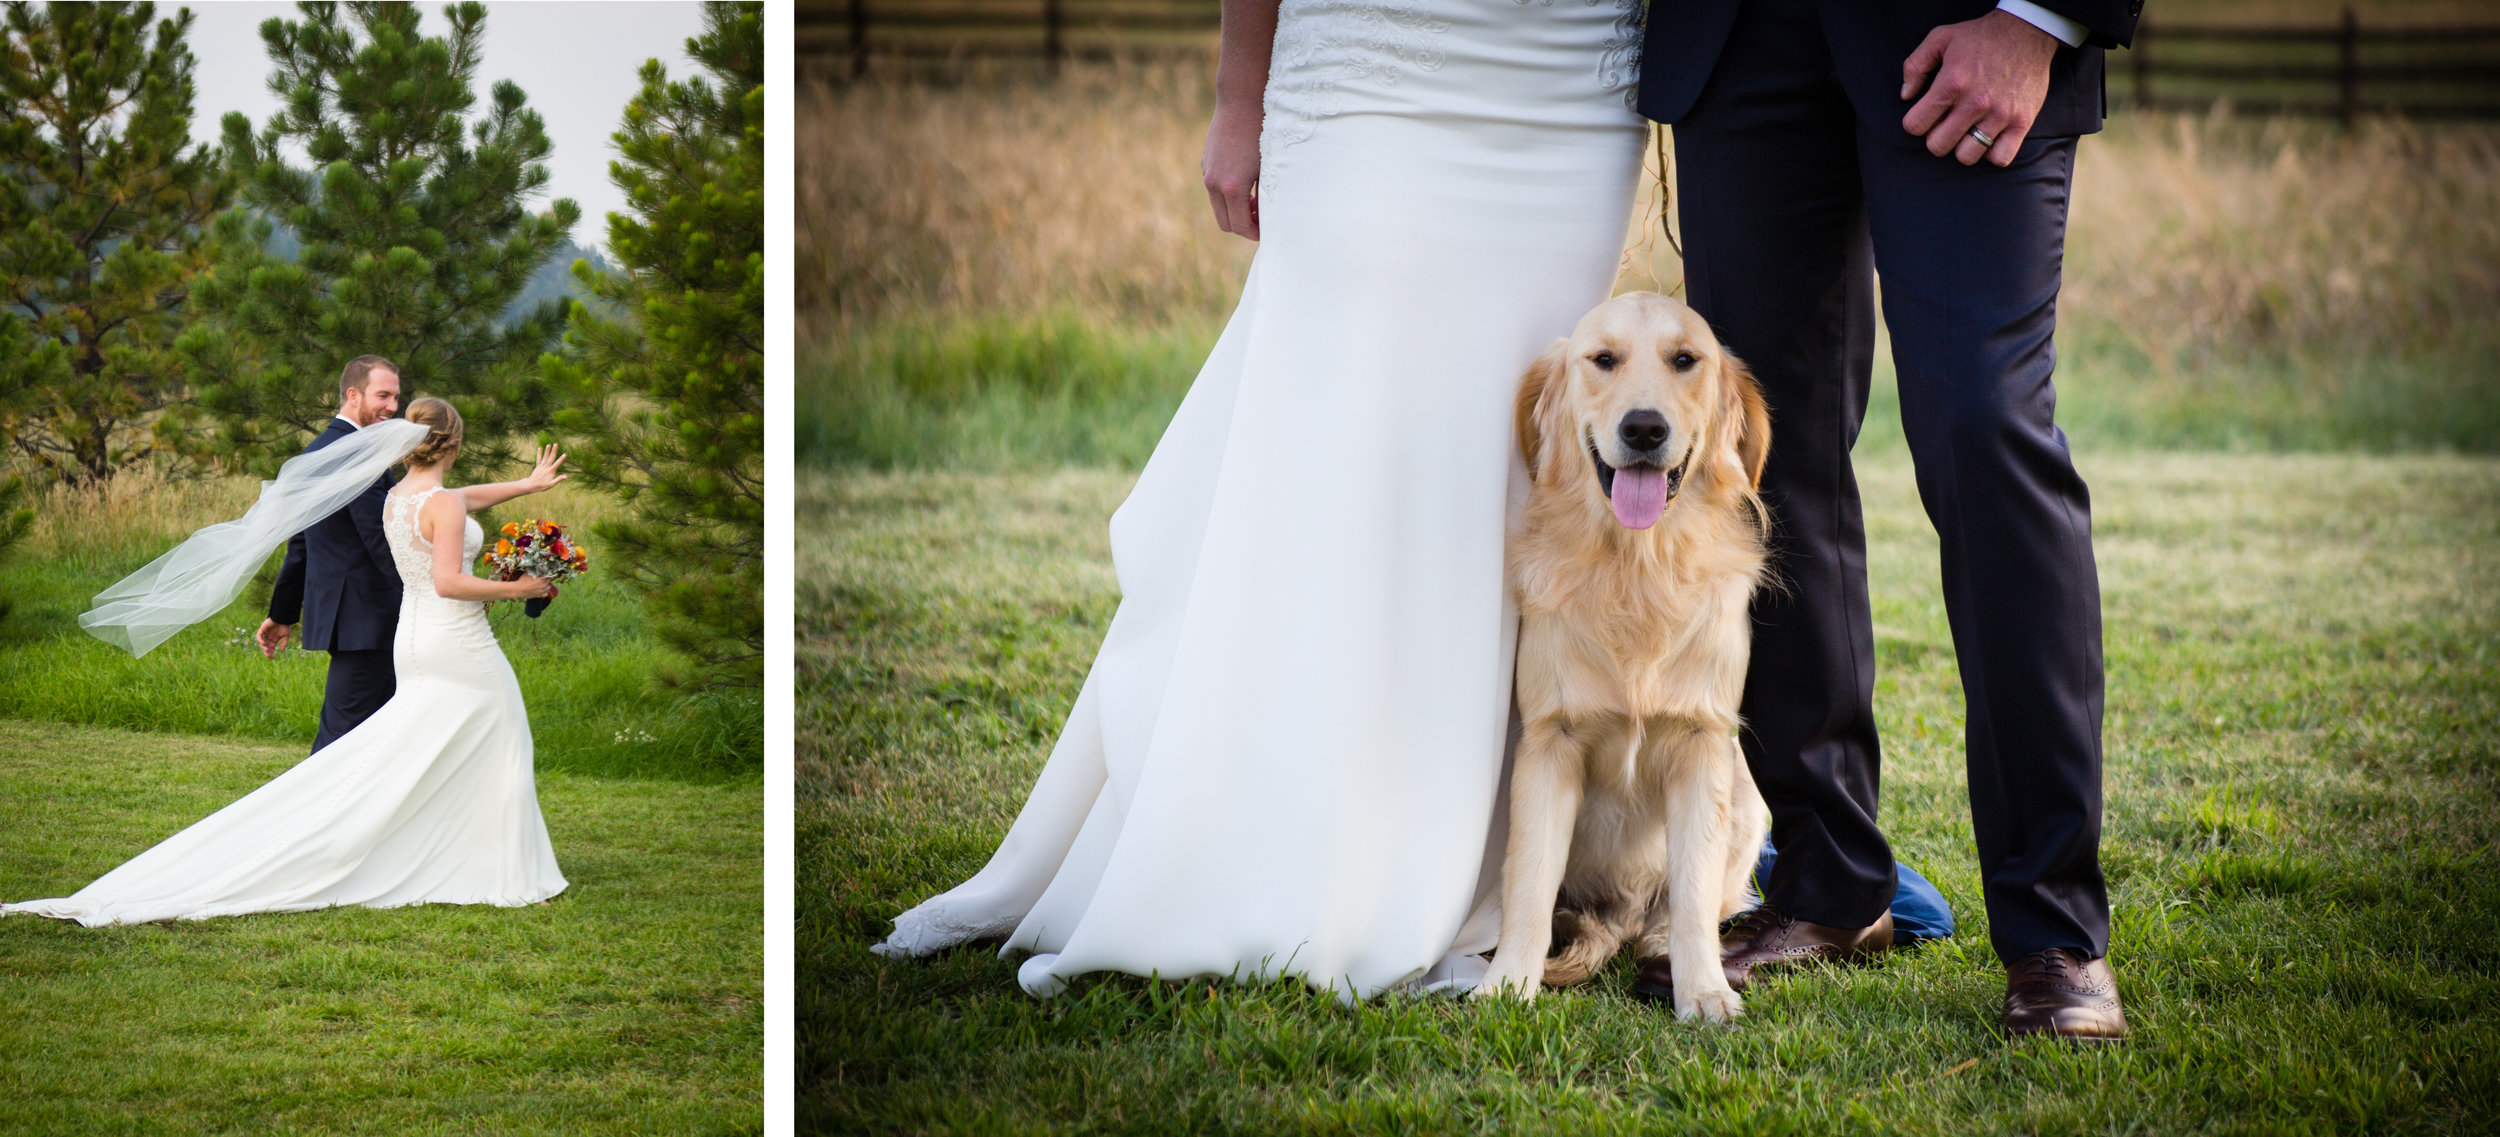 When you marry your best friend, you get to compare bling afterwards. And who could resist Barley? Definitely the most handsome four-legged child you could ask for!